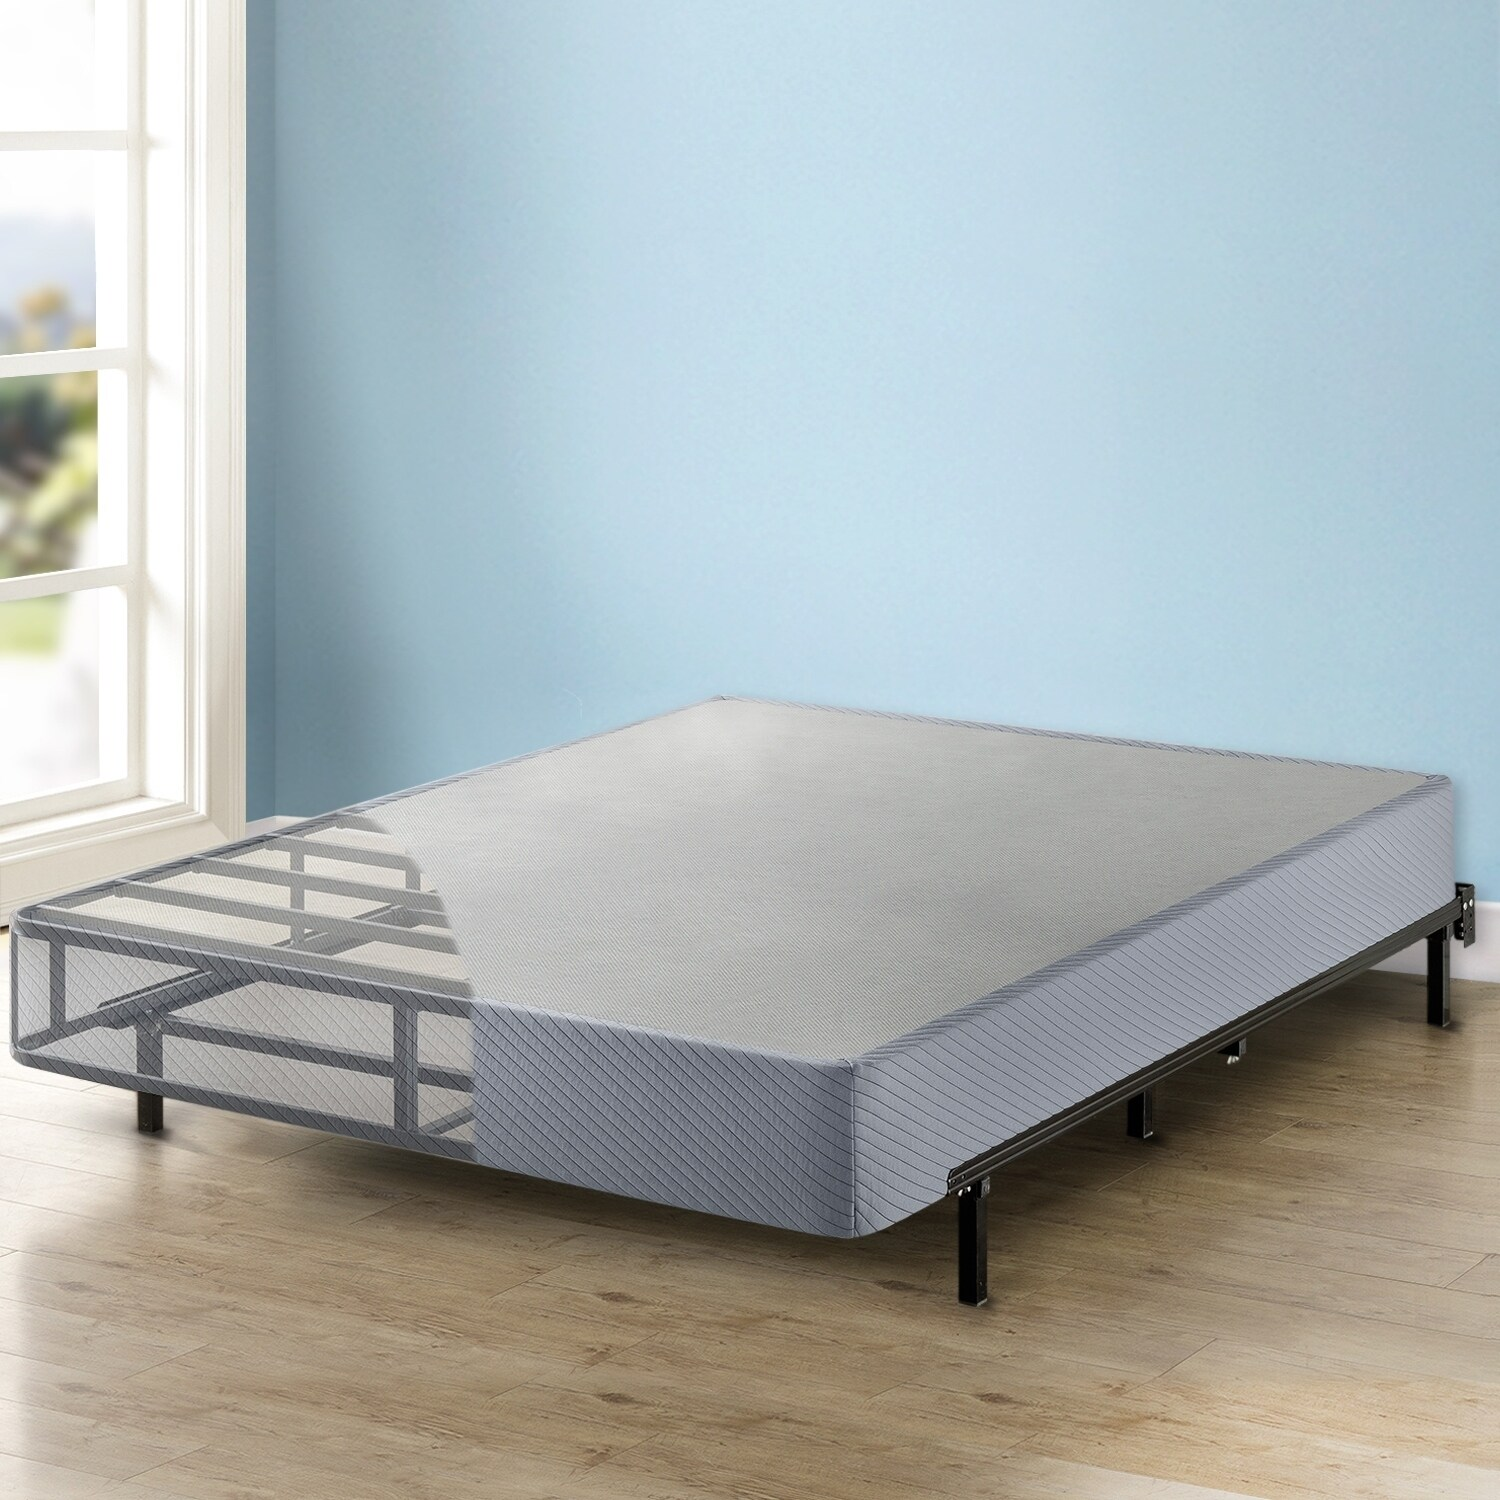 Gray Best Price Mattress Twin Box Spring 9 High Profile with with Heavy Duty Steel Slat Mattress Foundation Fits Standard Bed Frame